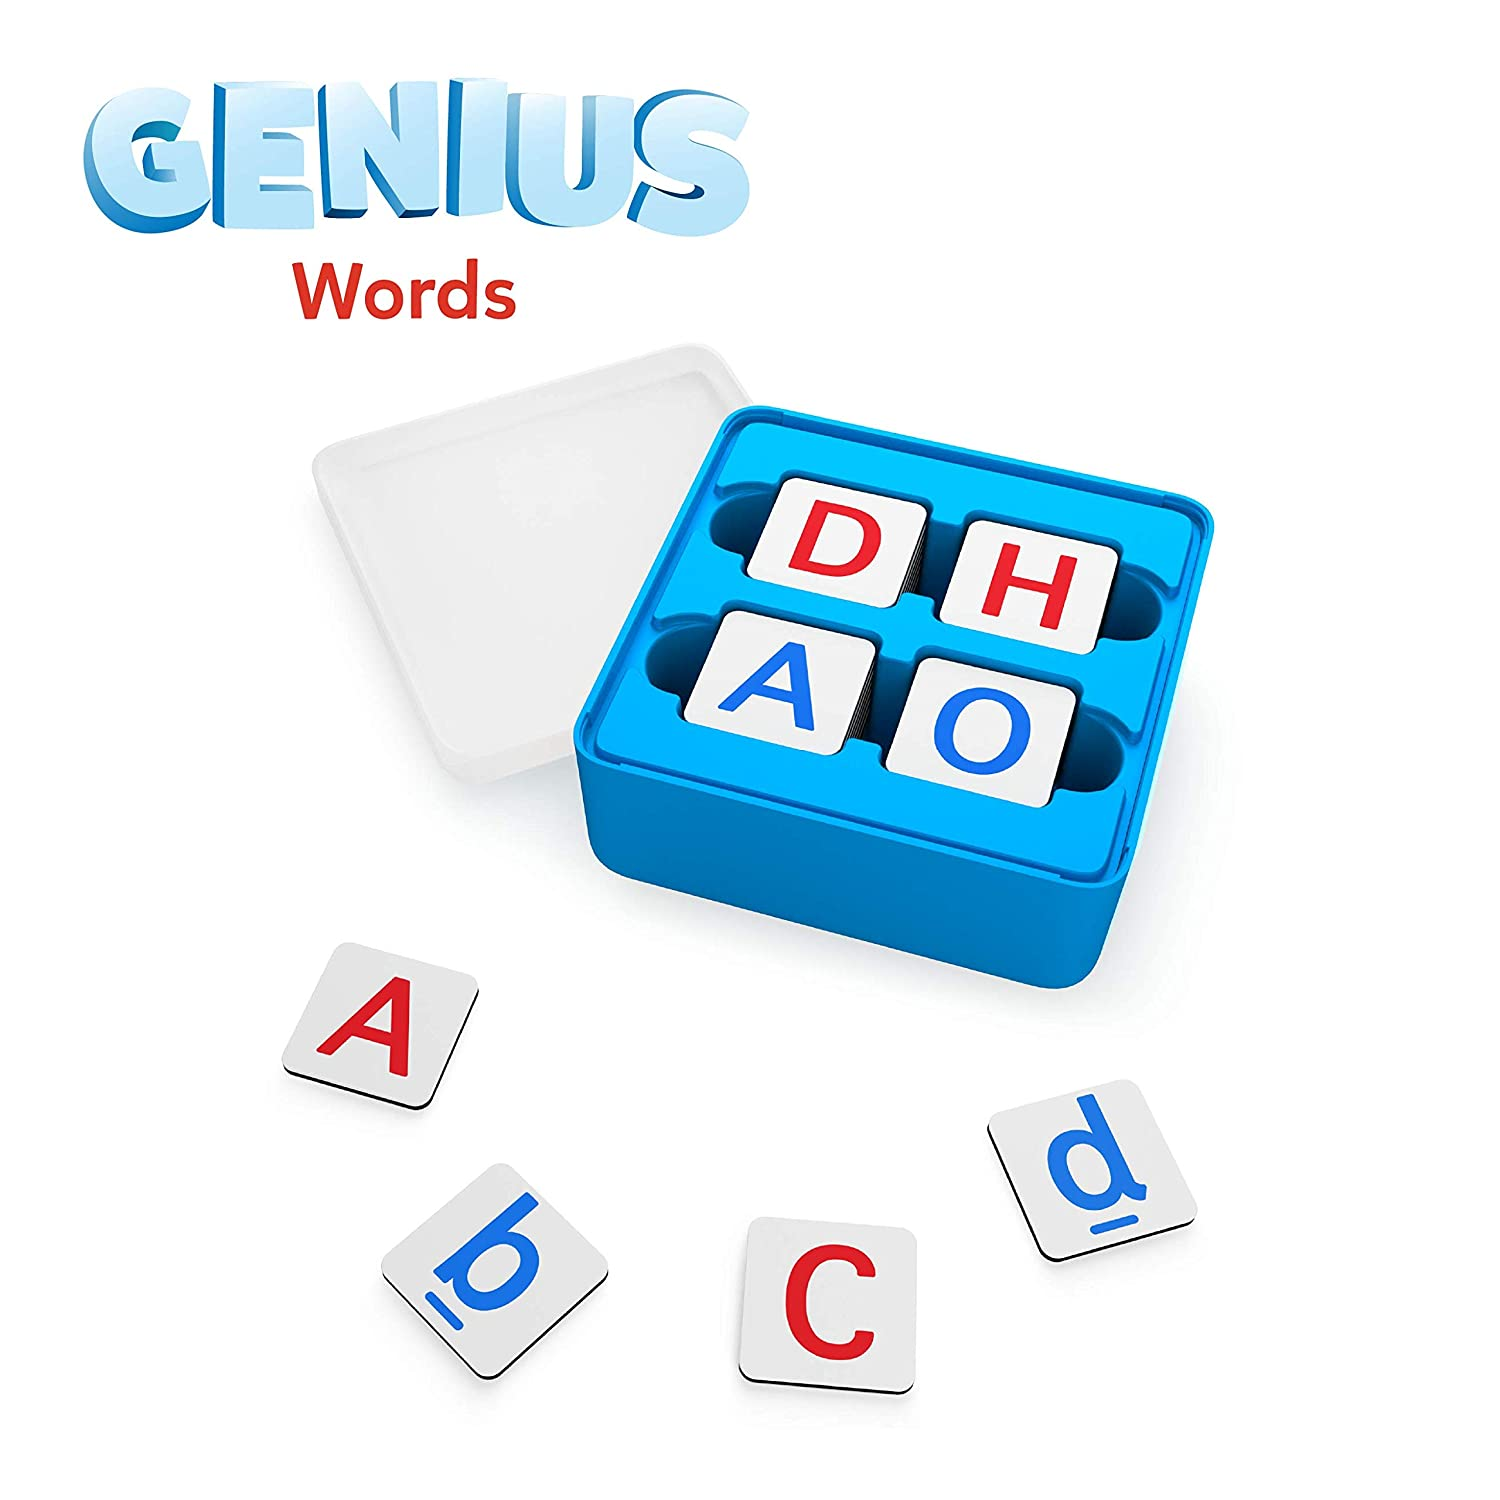 Osmo - Genius Words Game - Ages 6-10 - Interactive Letter Recognition, Phonics, Sight Words & Spelling - For iPad or Fire Tablet (Osmo Base Required)